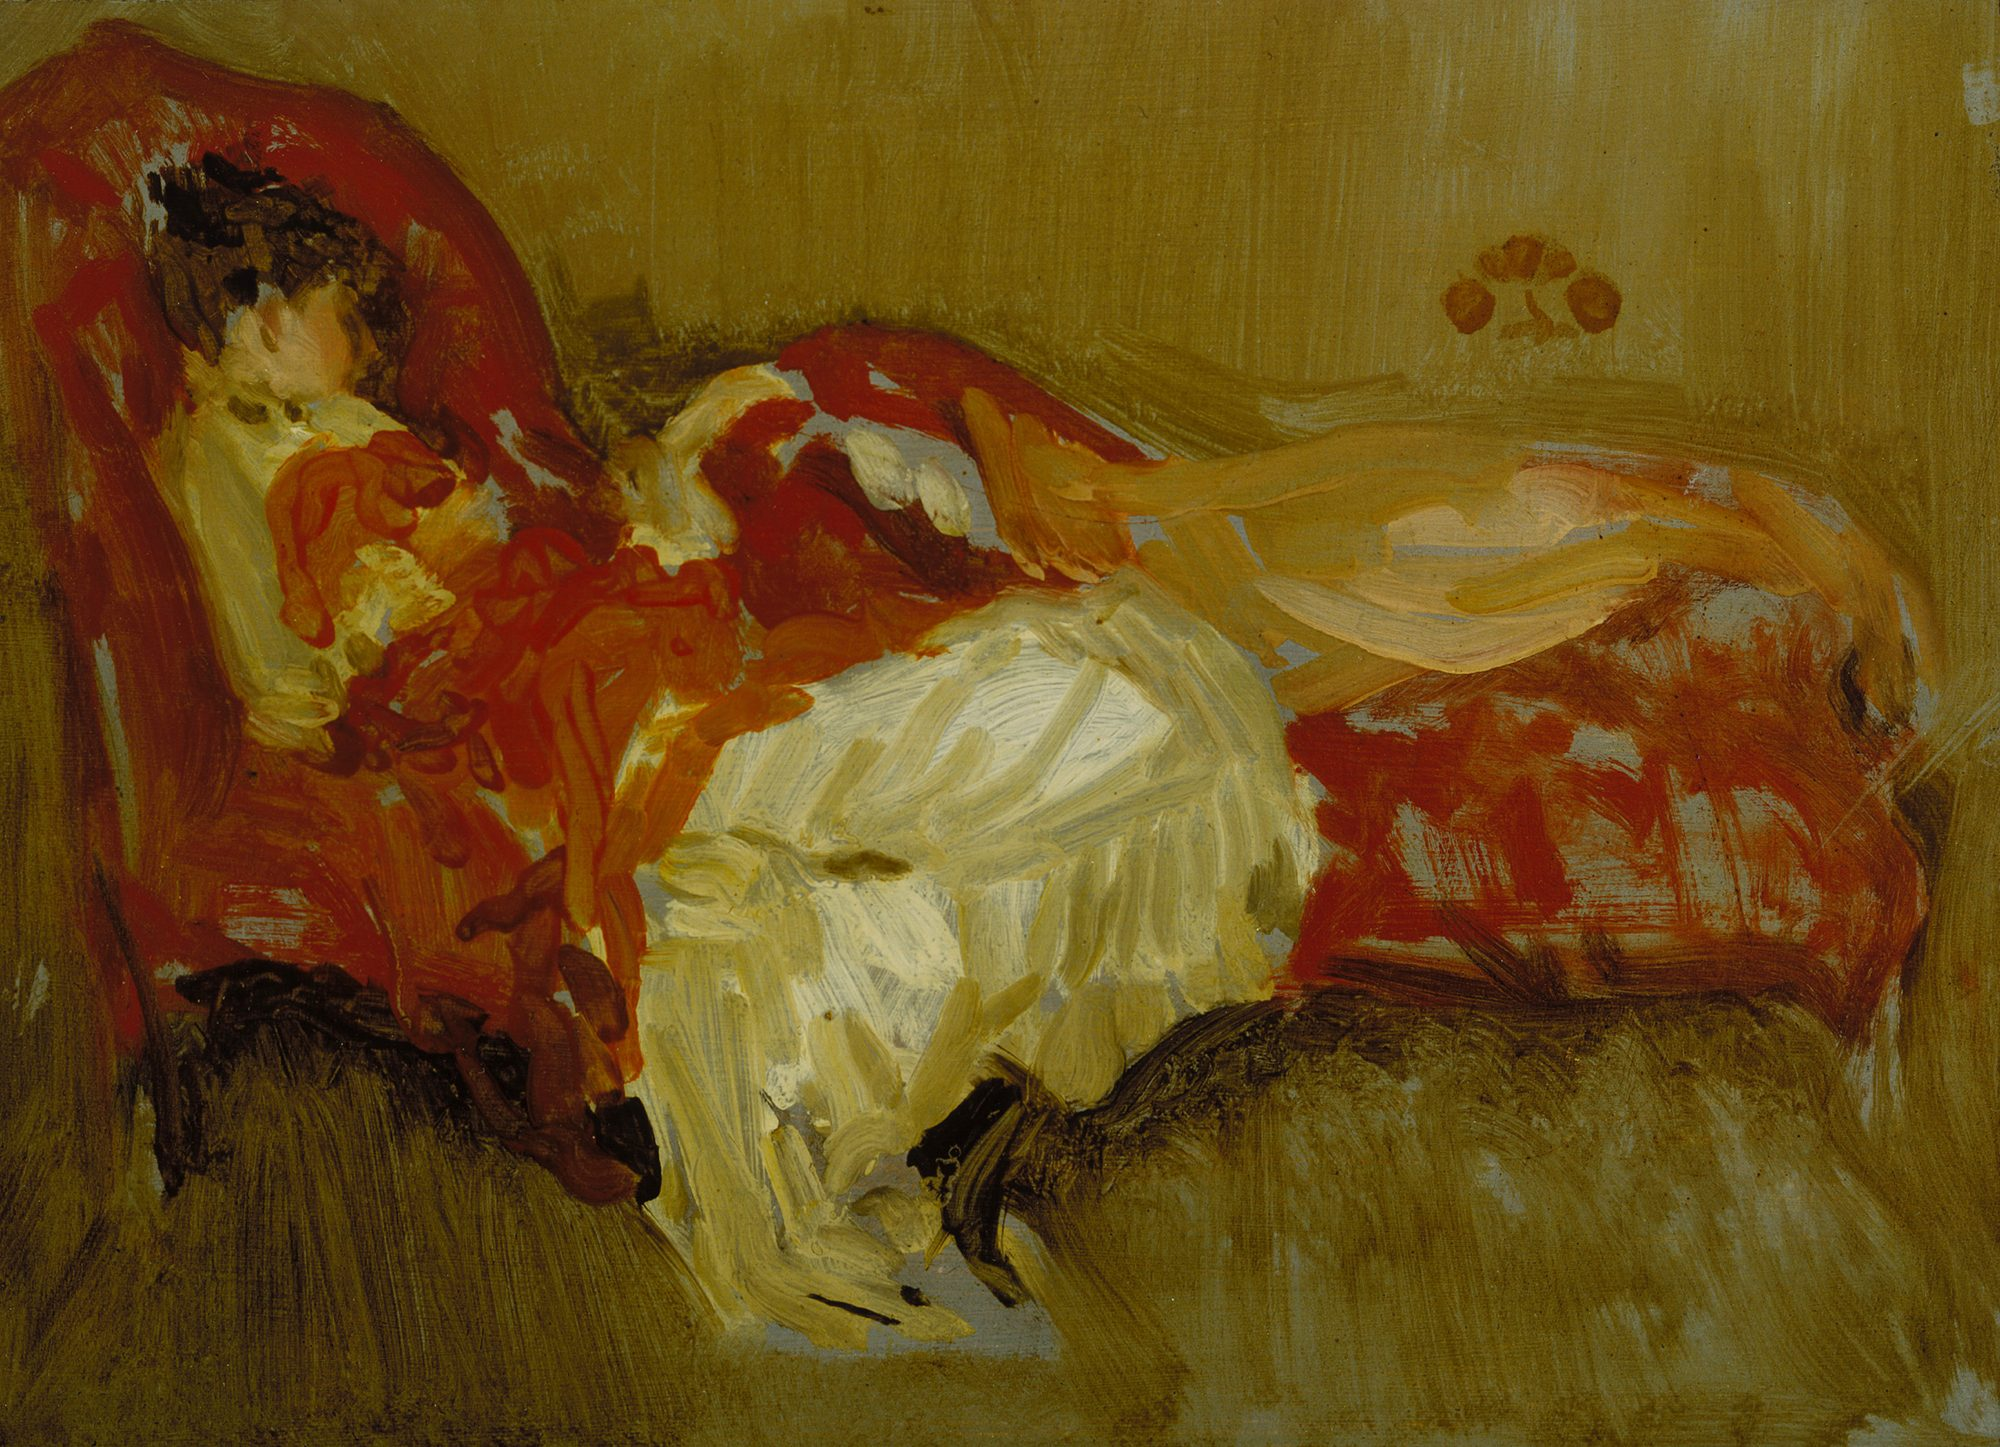 James Abbott McNeill Whistler, Note in Red: The Siesta, before 1884. Daniel J. Terra Collection. Terra Foundation for American Art, Chicago / Art Resource, NY.